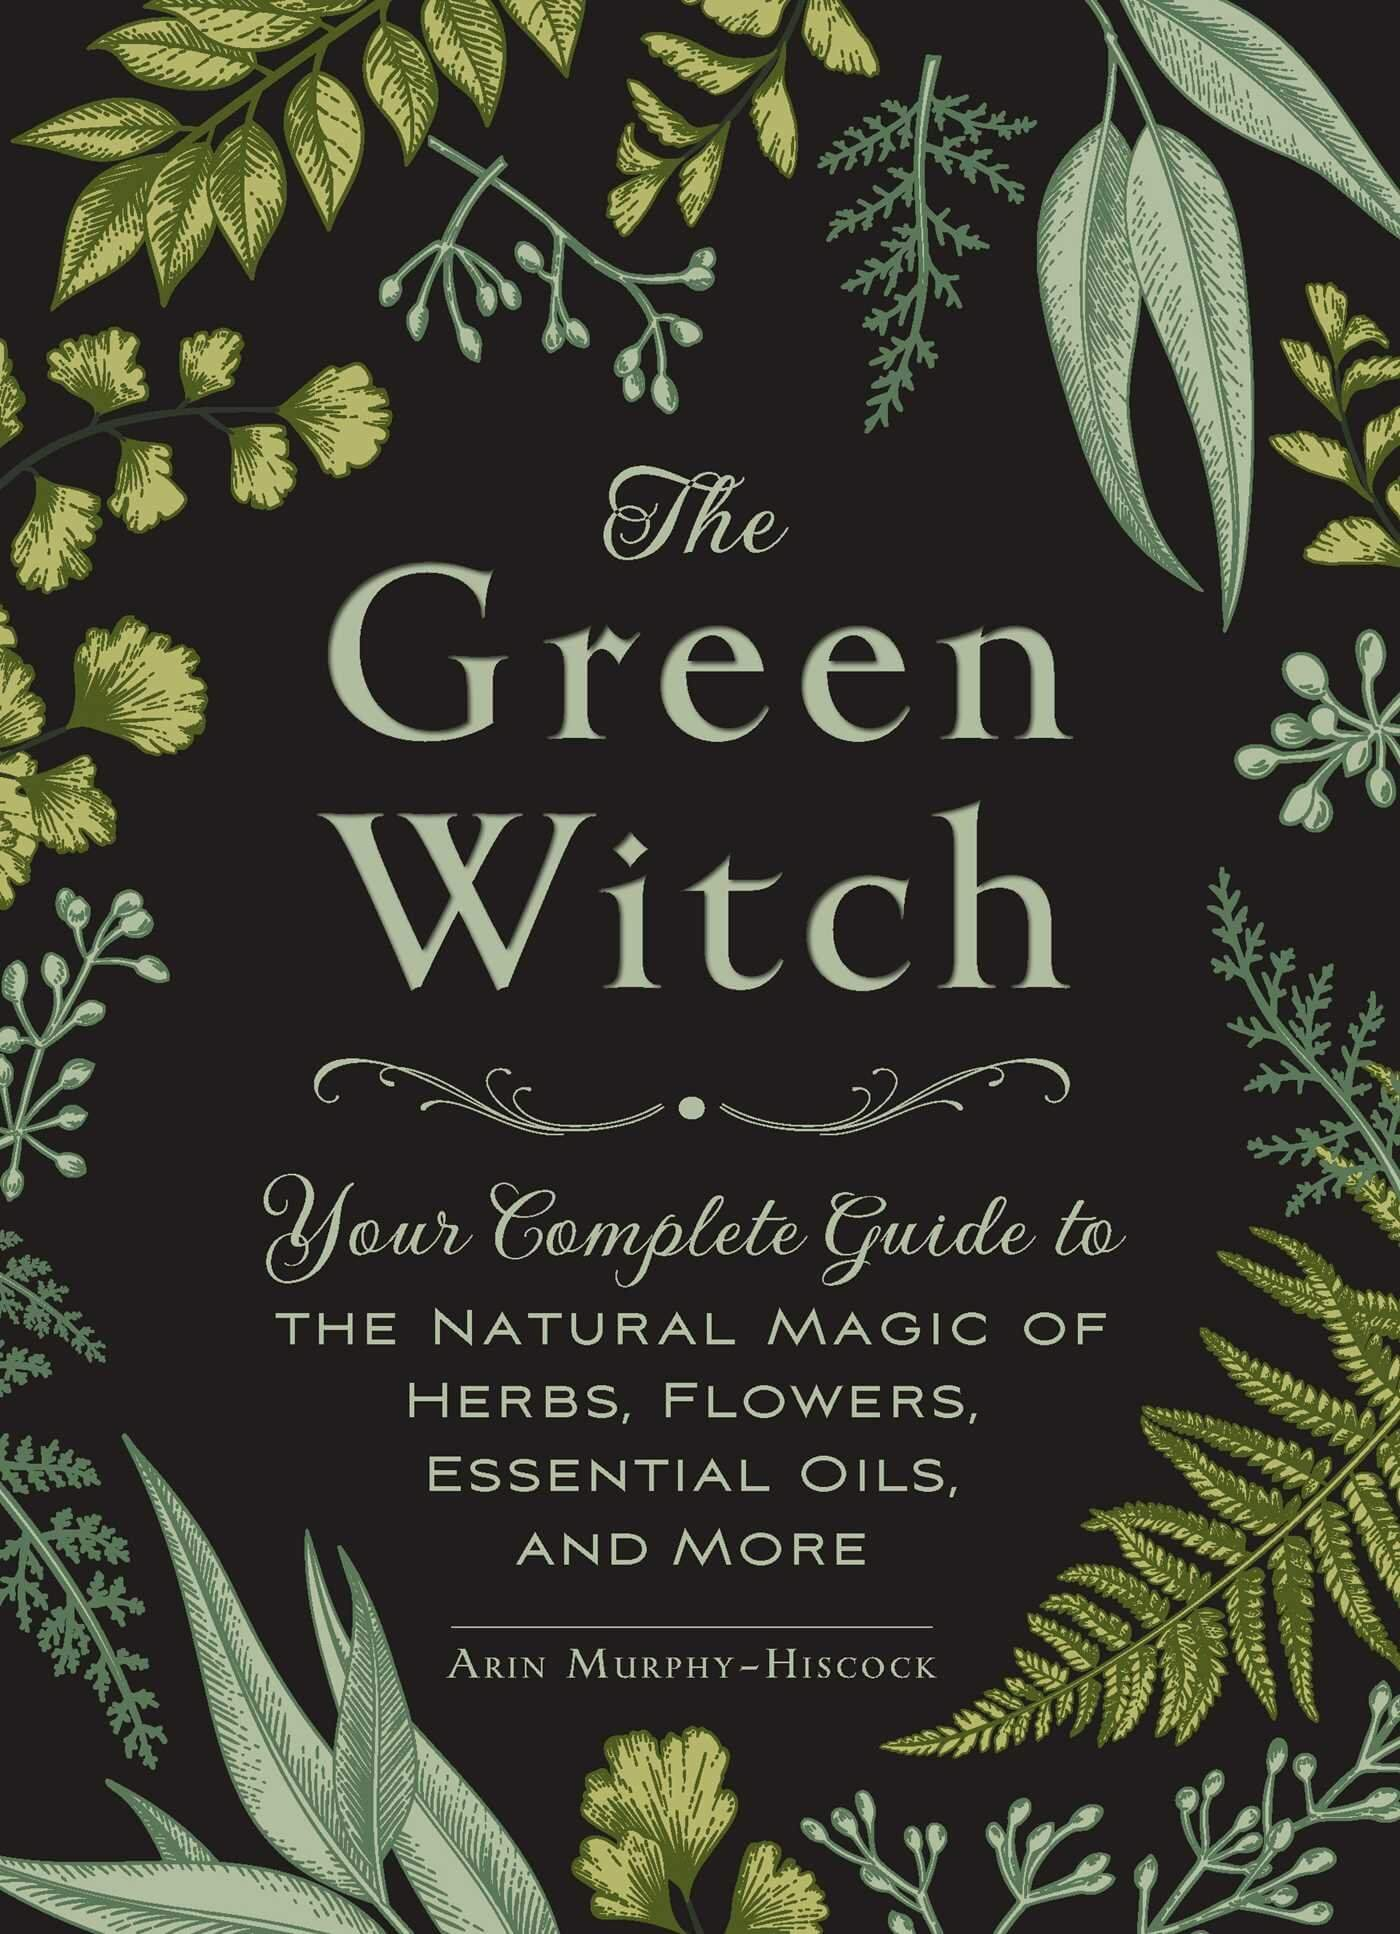 The Green Witch